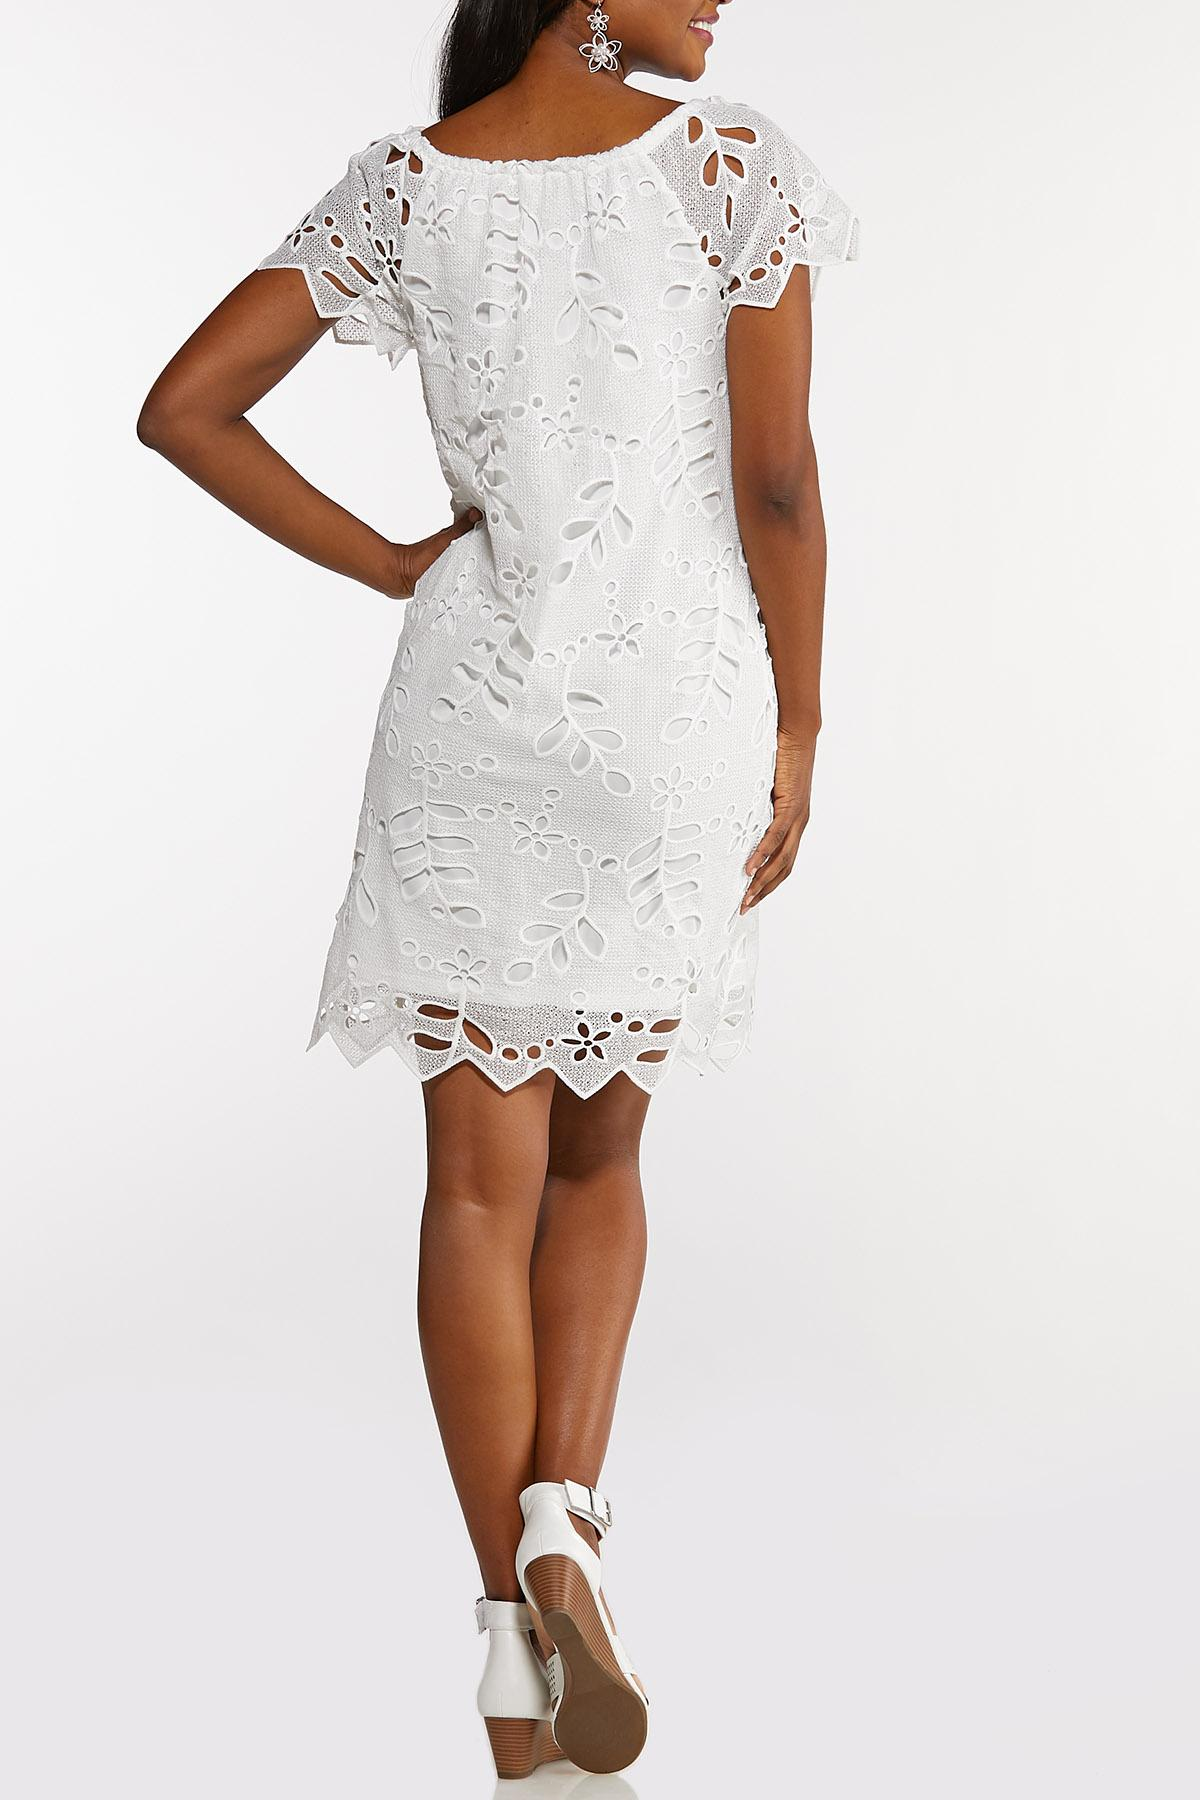 White Eyelet Dress (Item #44231454)